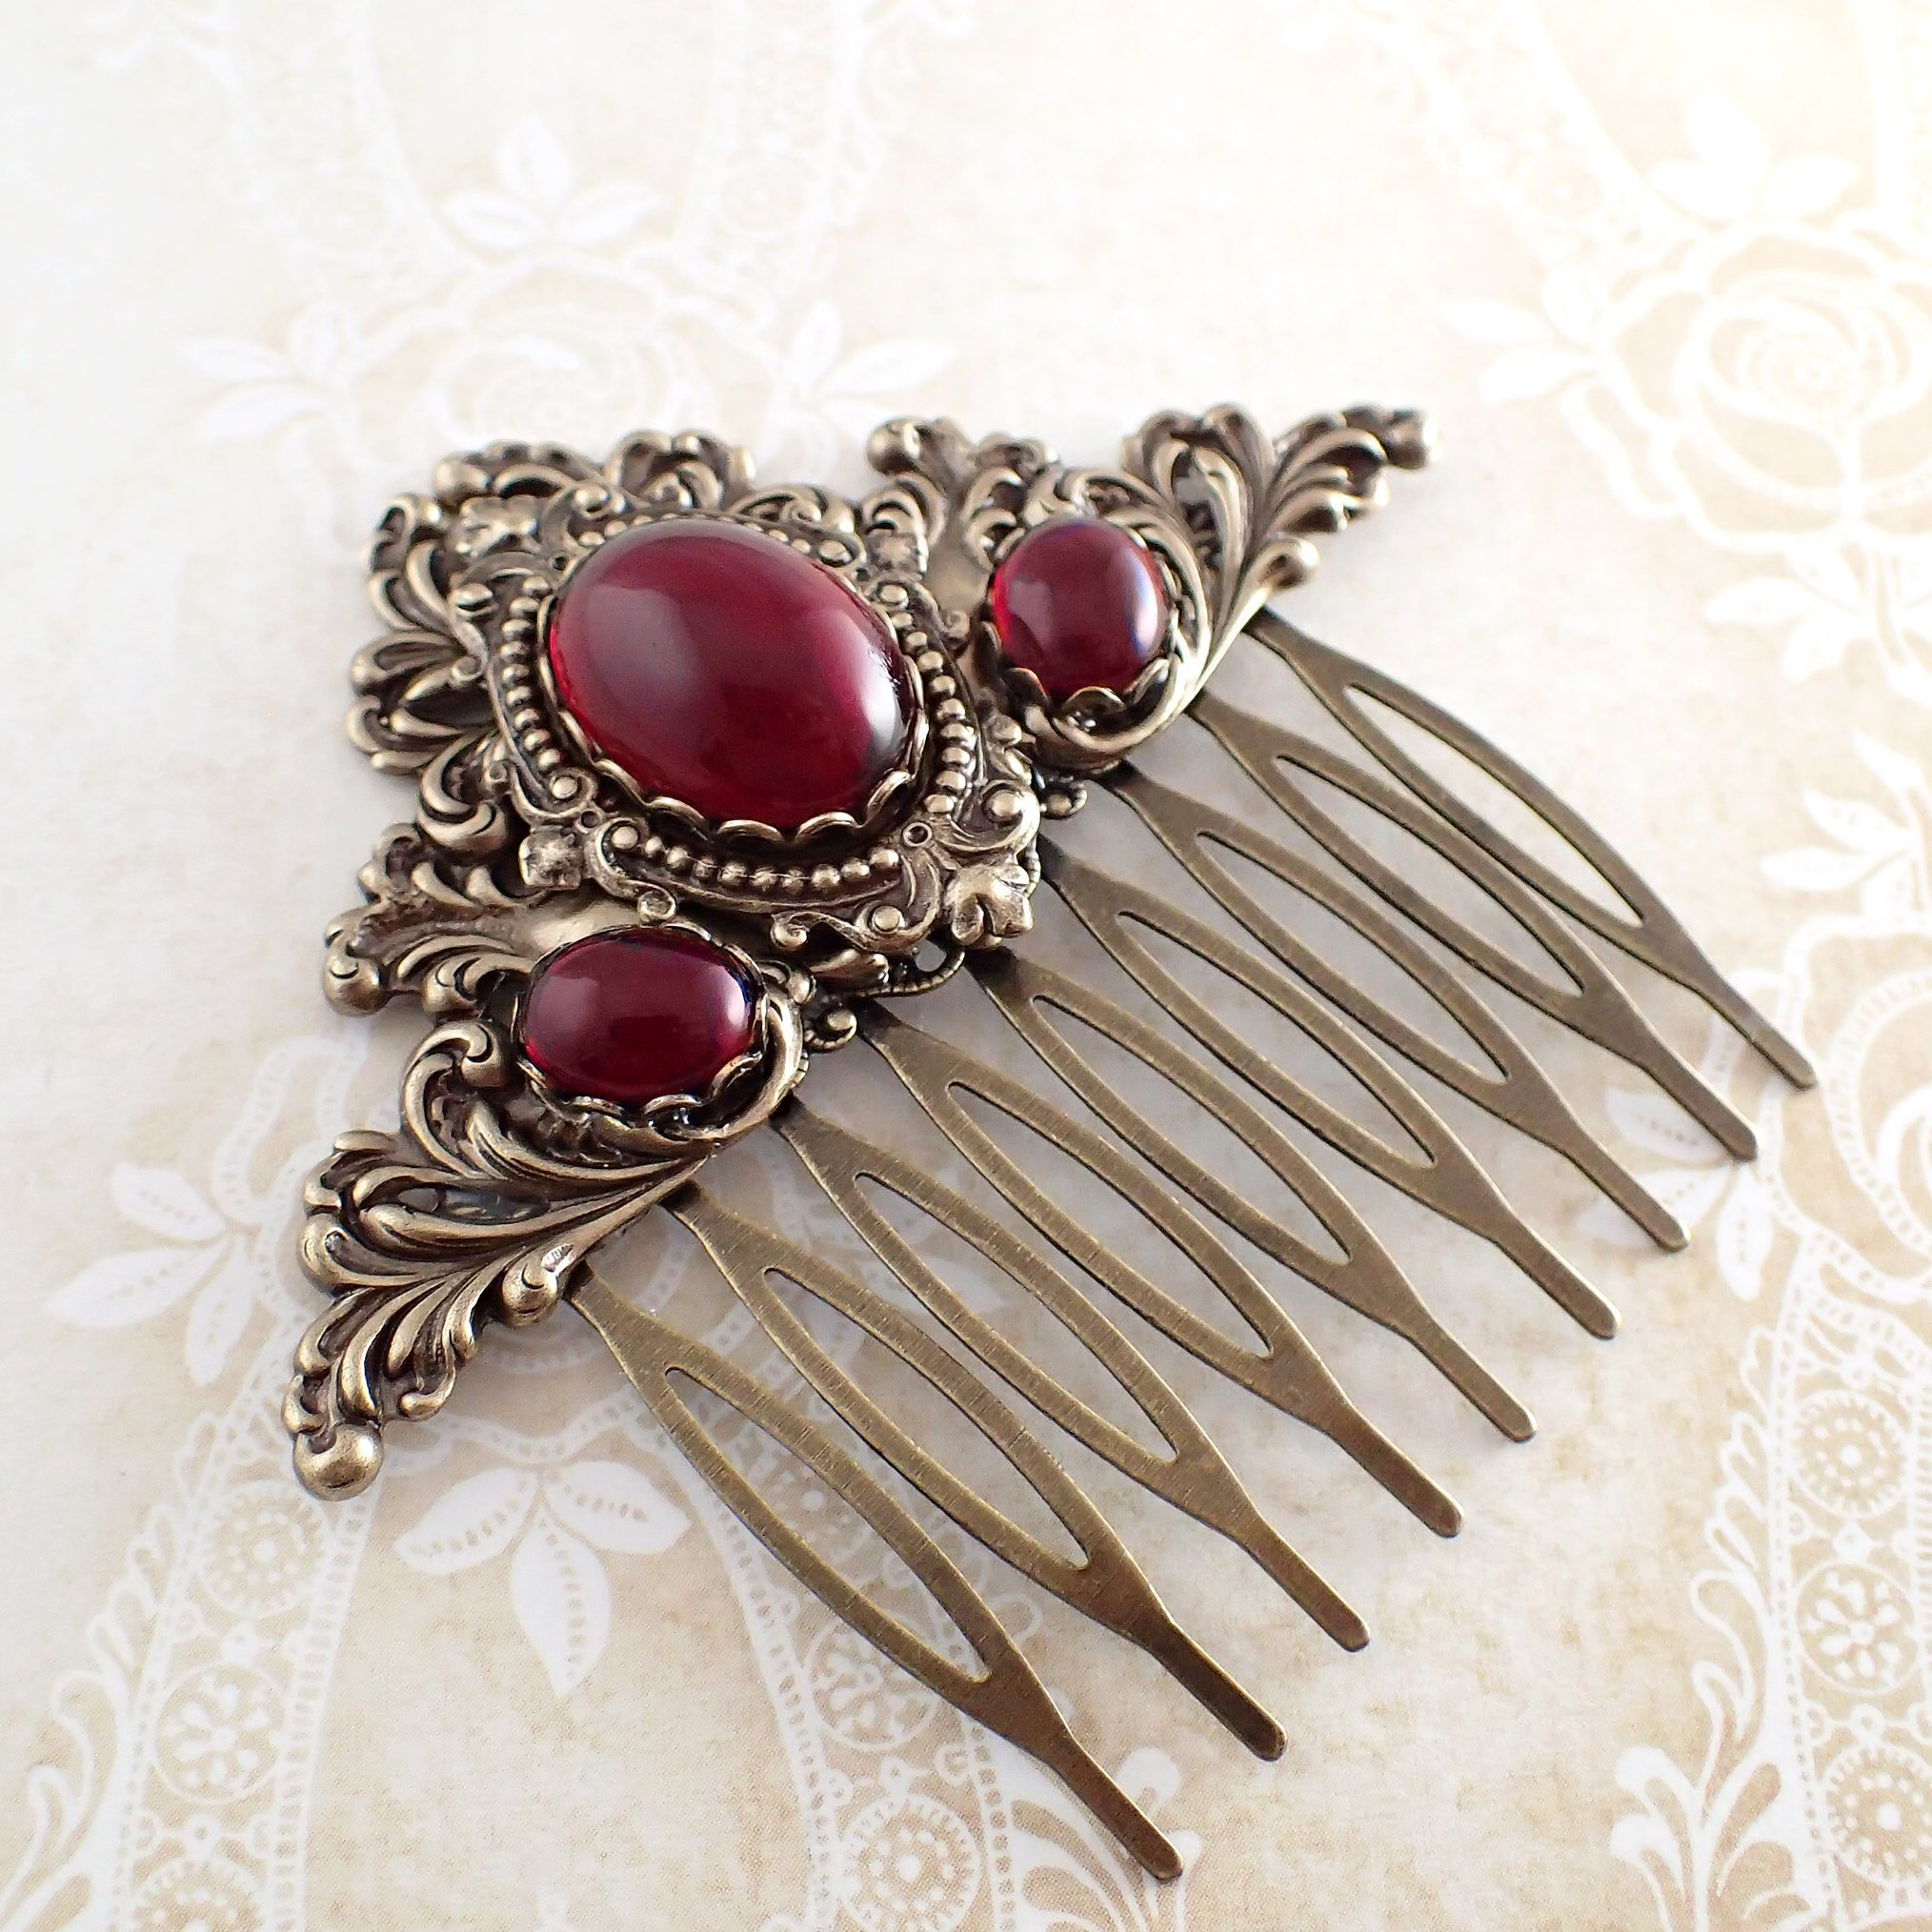 Victorian Gothic Style Red Cabochon Hair Comb